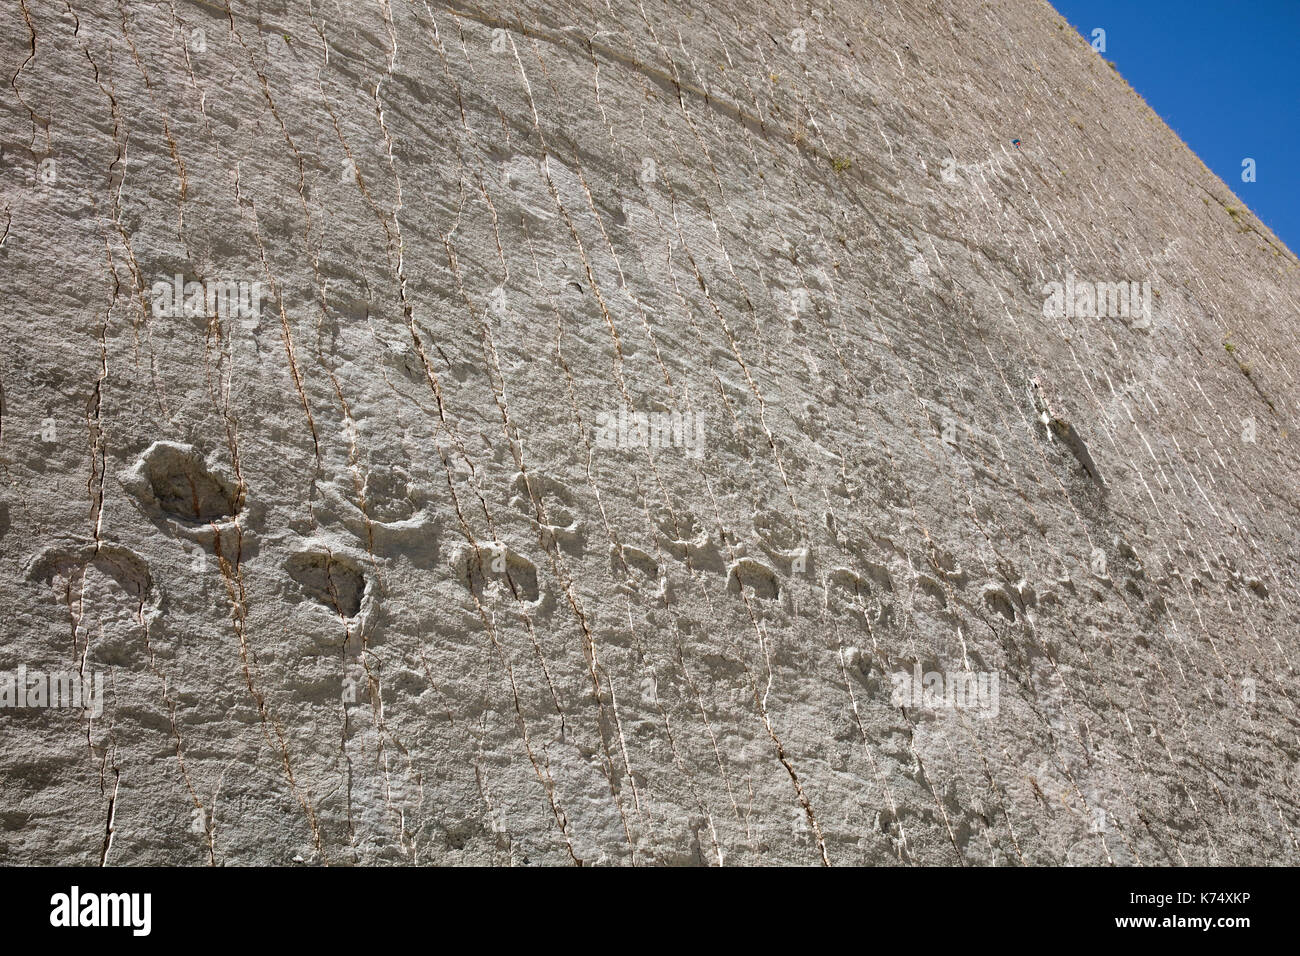 Dinosaur footprints from the Late Cretaceous / Maastrichtian in the Cal Orck'o cliff in the Parque Cretácico / Cretaceous Park, Sucre, Bolivia - Stock Image